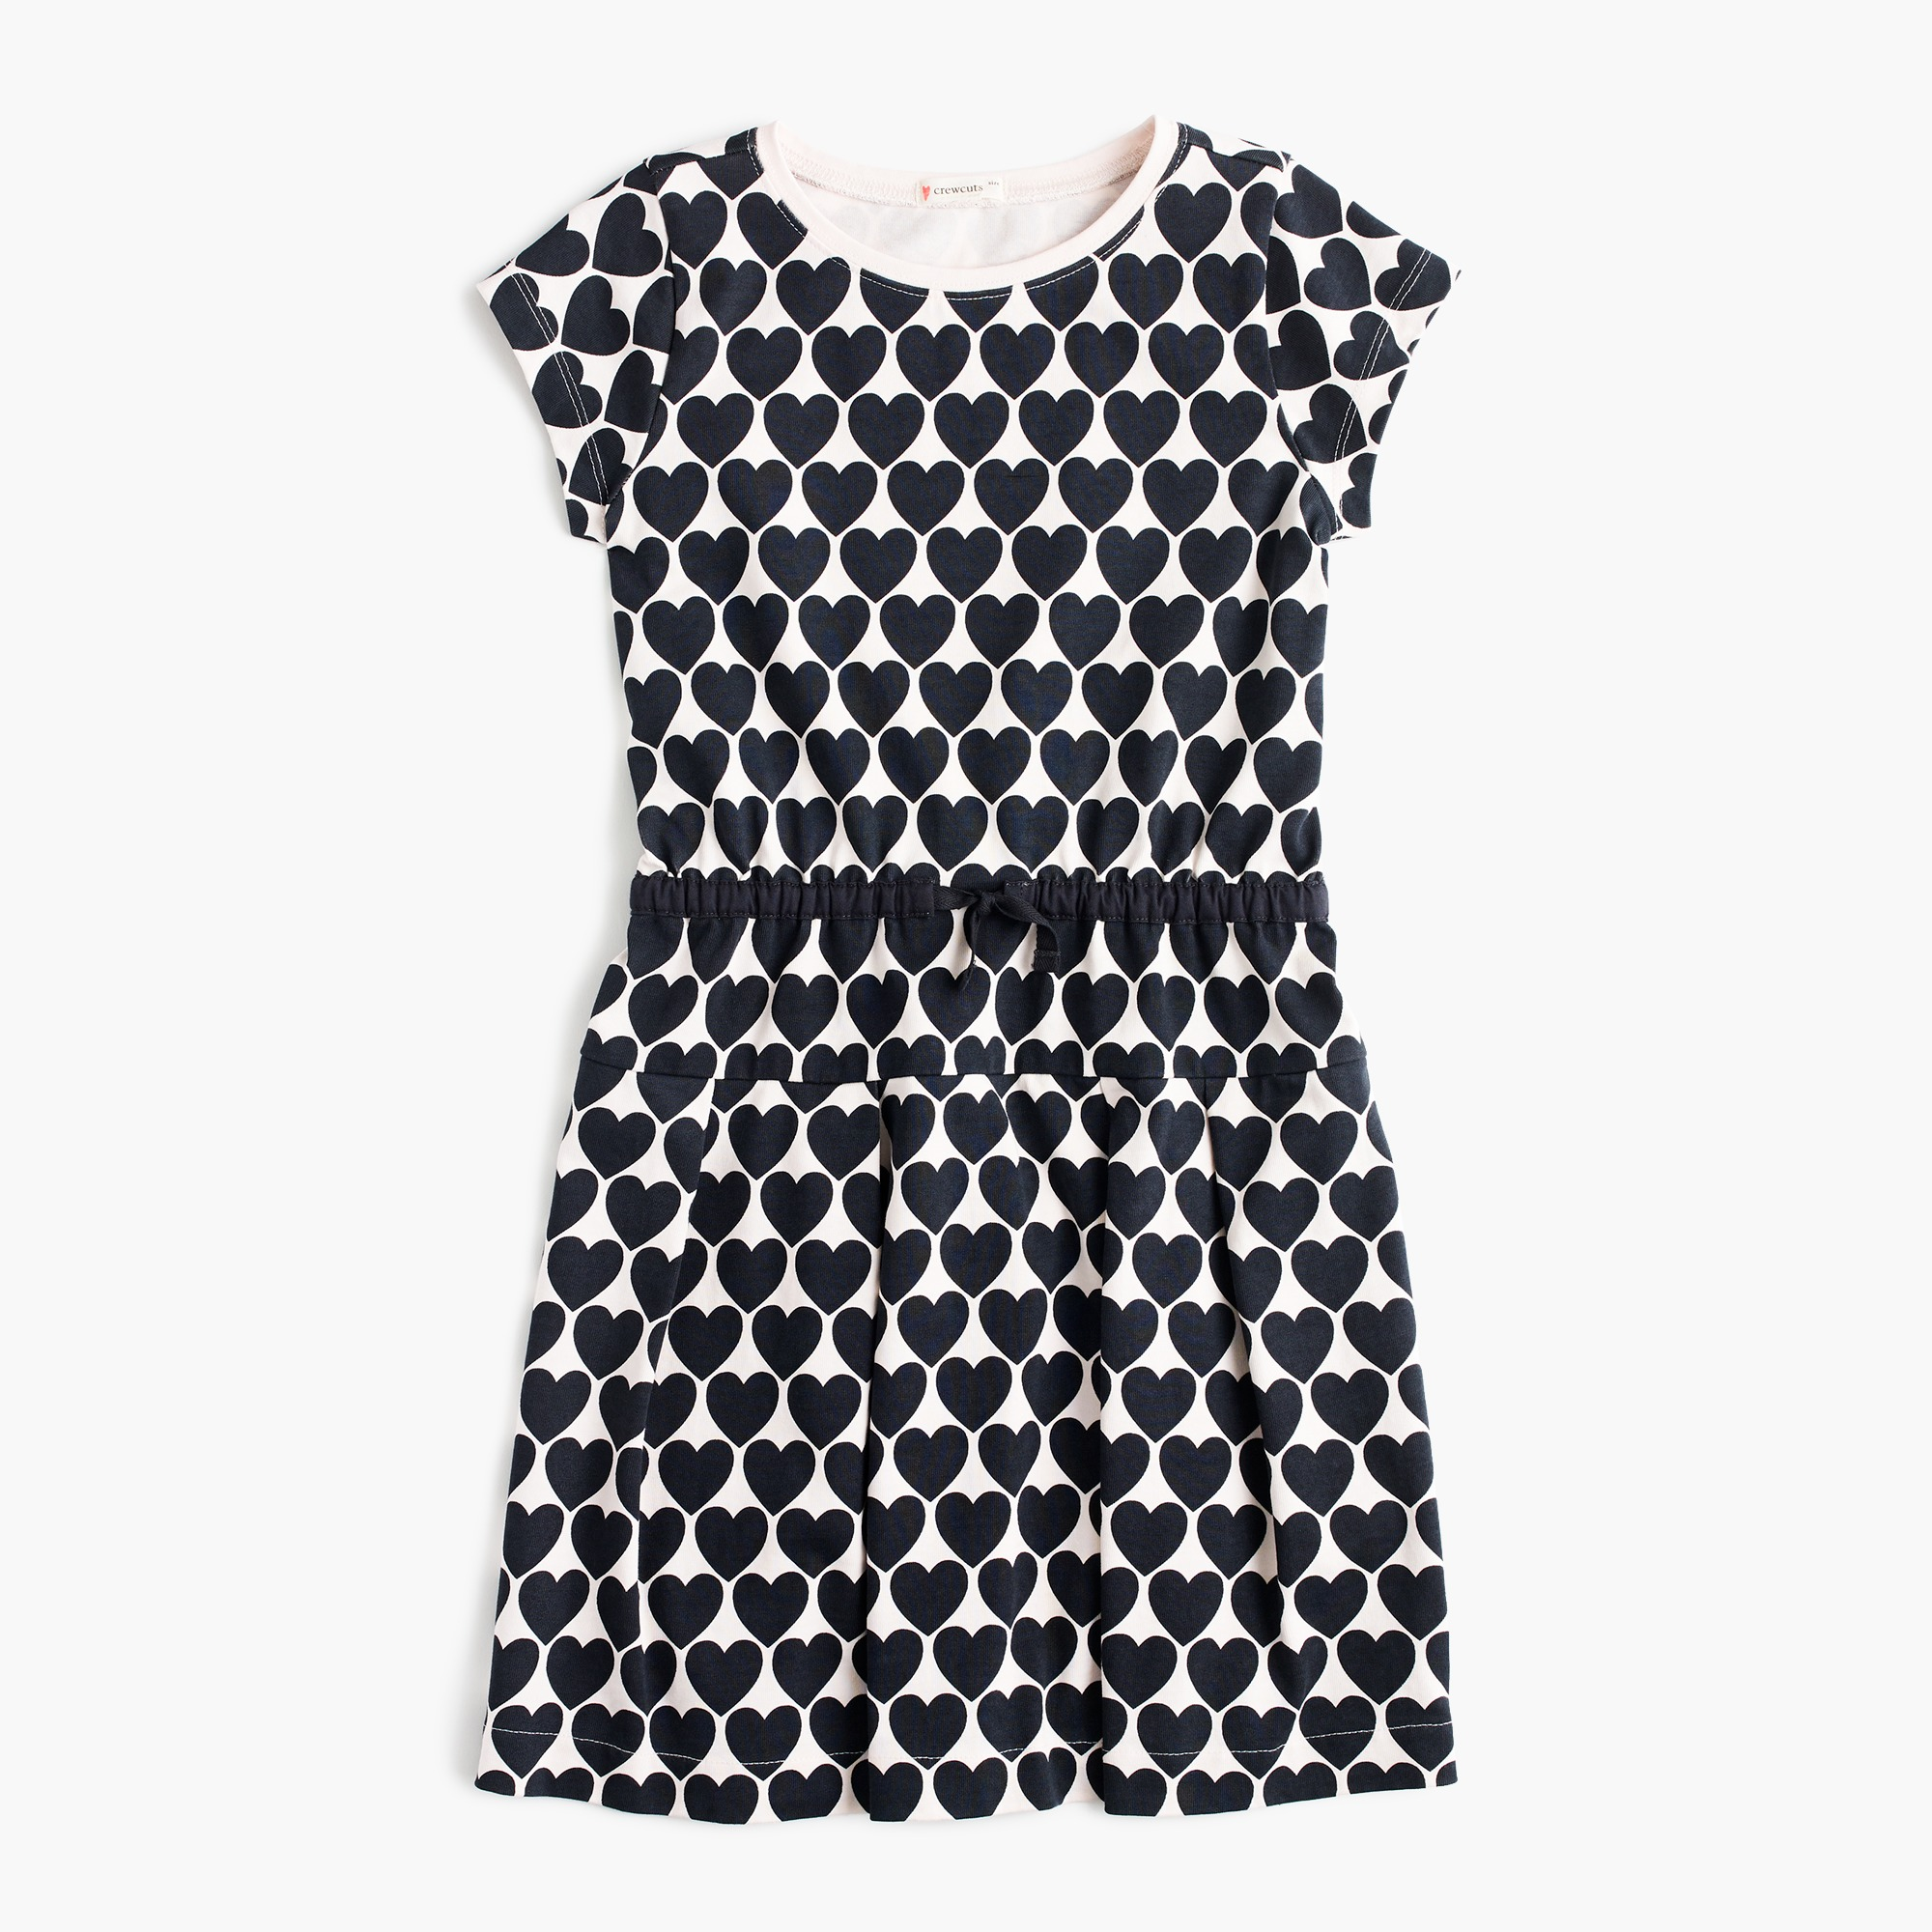 Girls' cap-sleeve dress in hearts girl dresses c